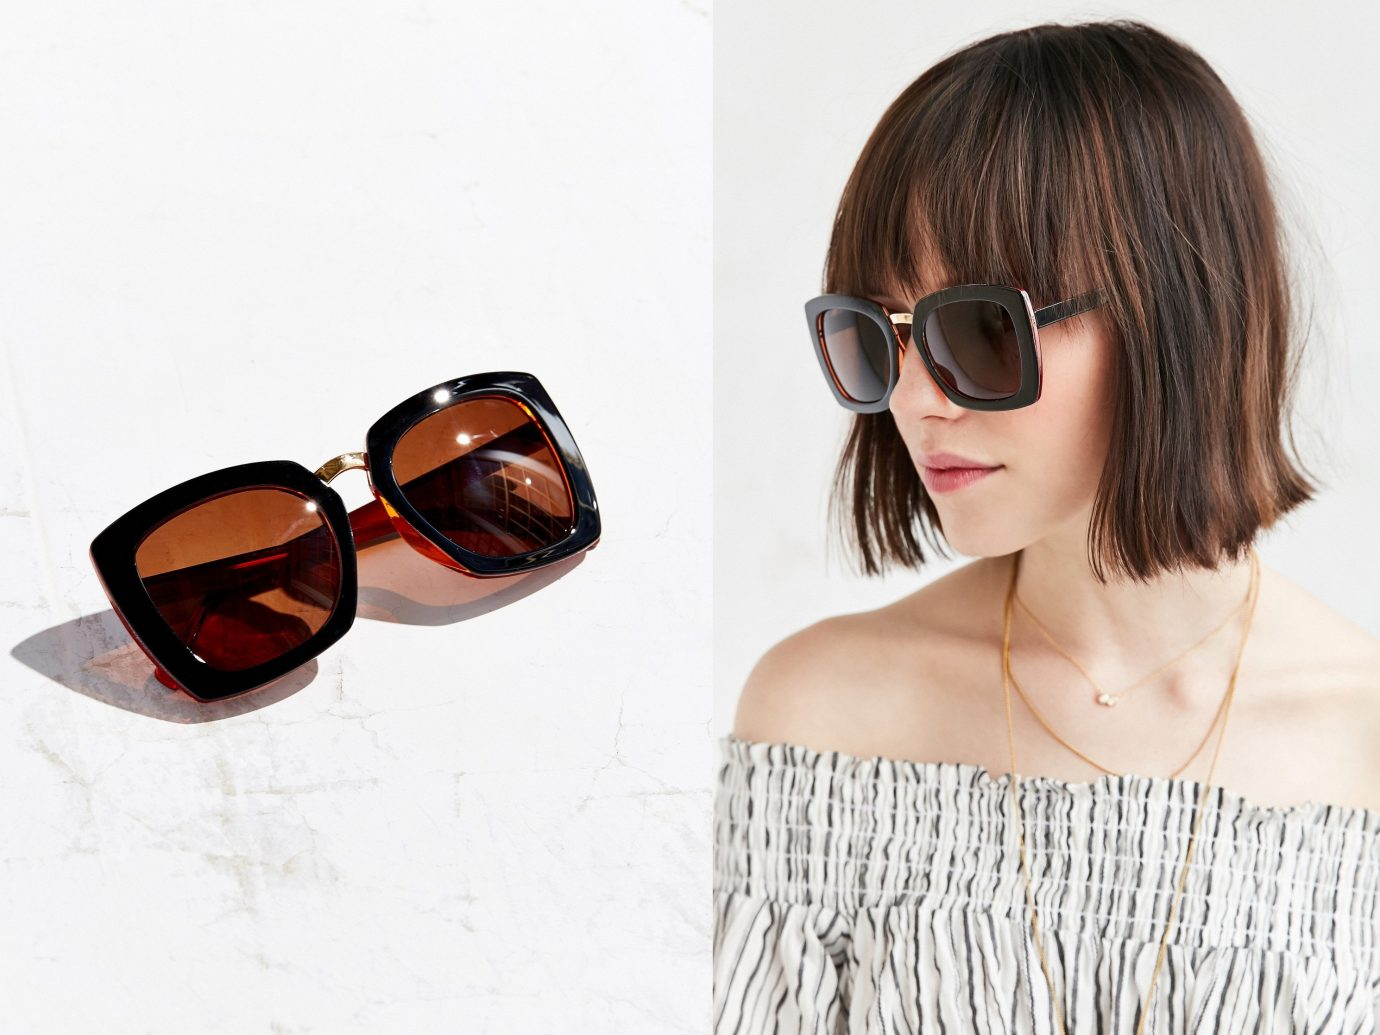 Style + Design person eyewear sunglasses spectacles glasses hair vision care outdoor brown woman accessory hairstyle fashion accessory goggles brown hair organ long hair moustache eye